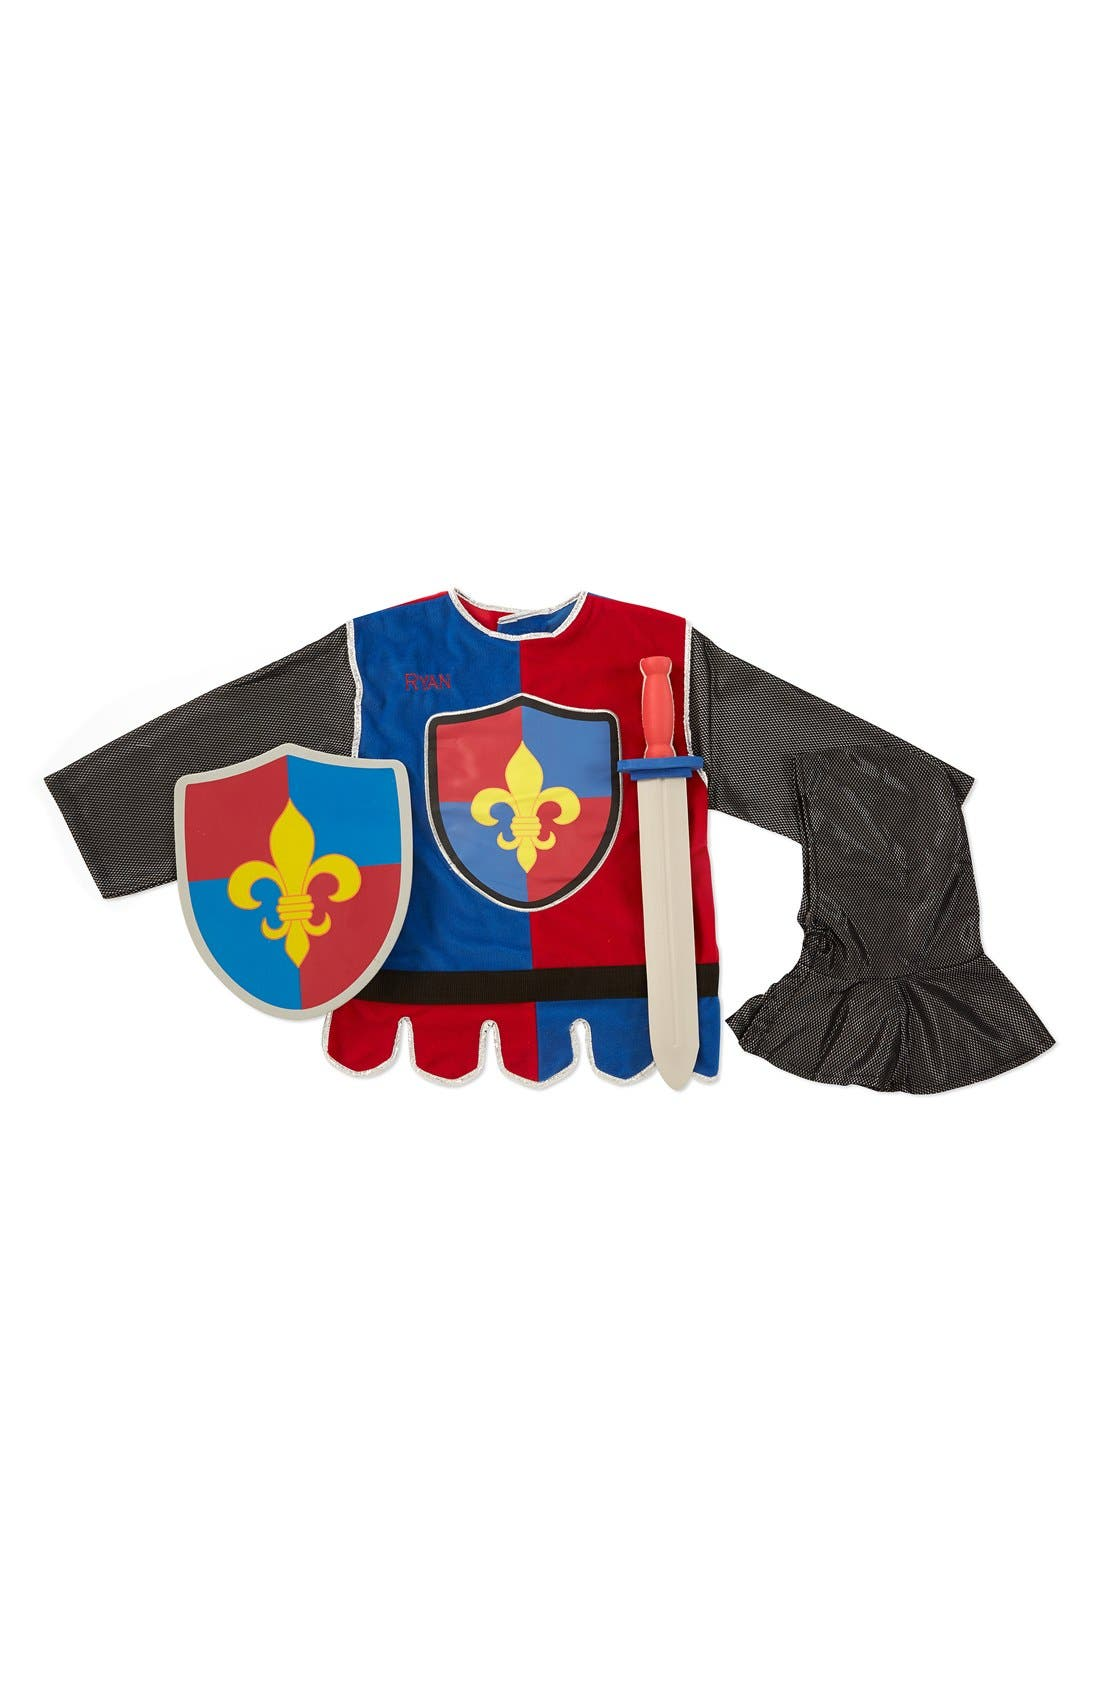 Alternate Image 1 Selected - Melissa & Doug 'Knight' Personalized Costume Set (Little Kid)